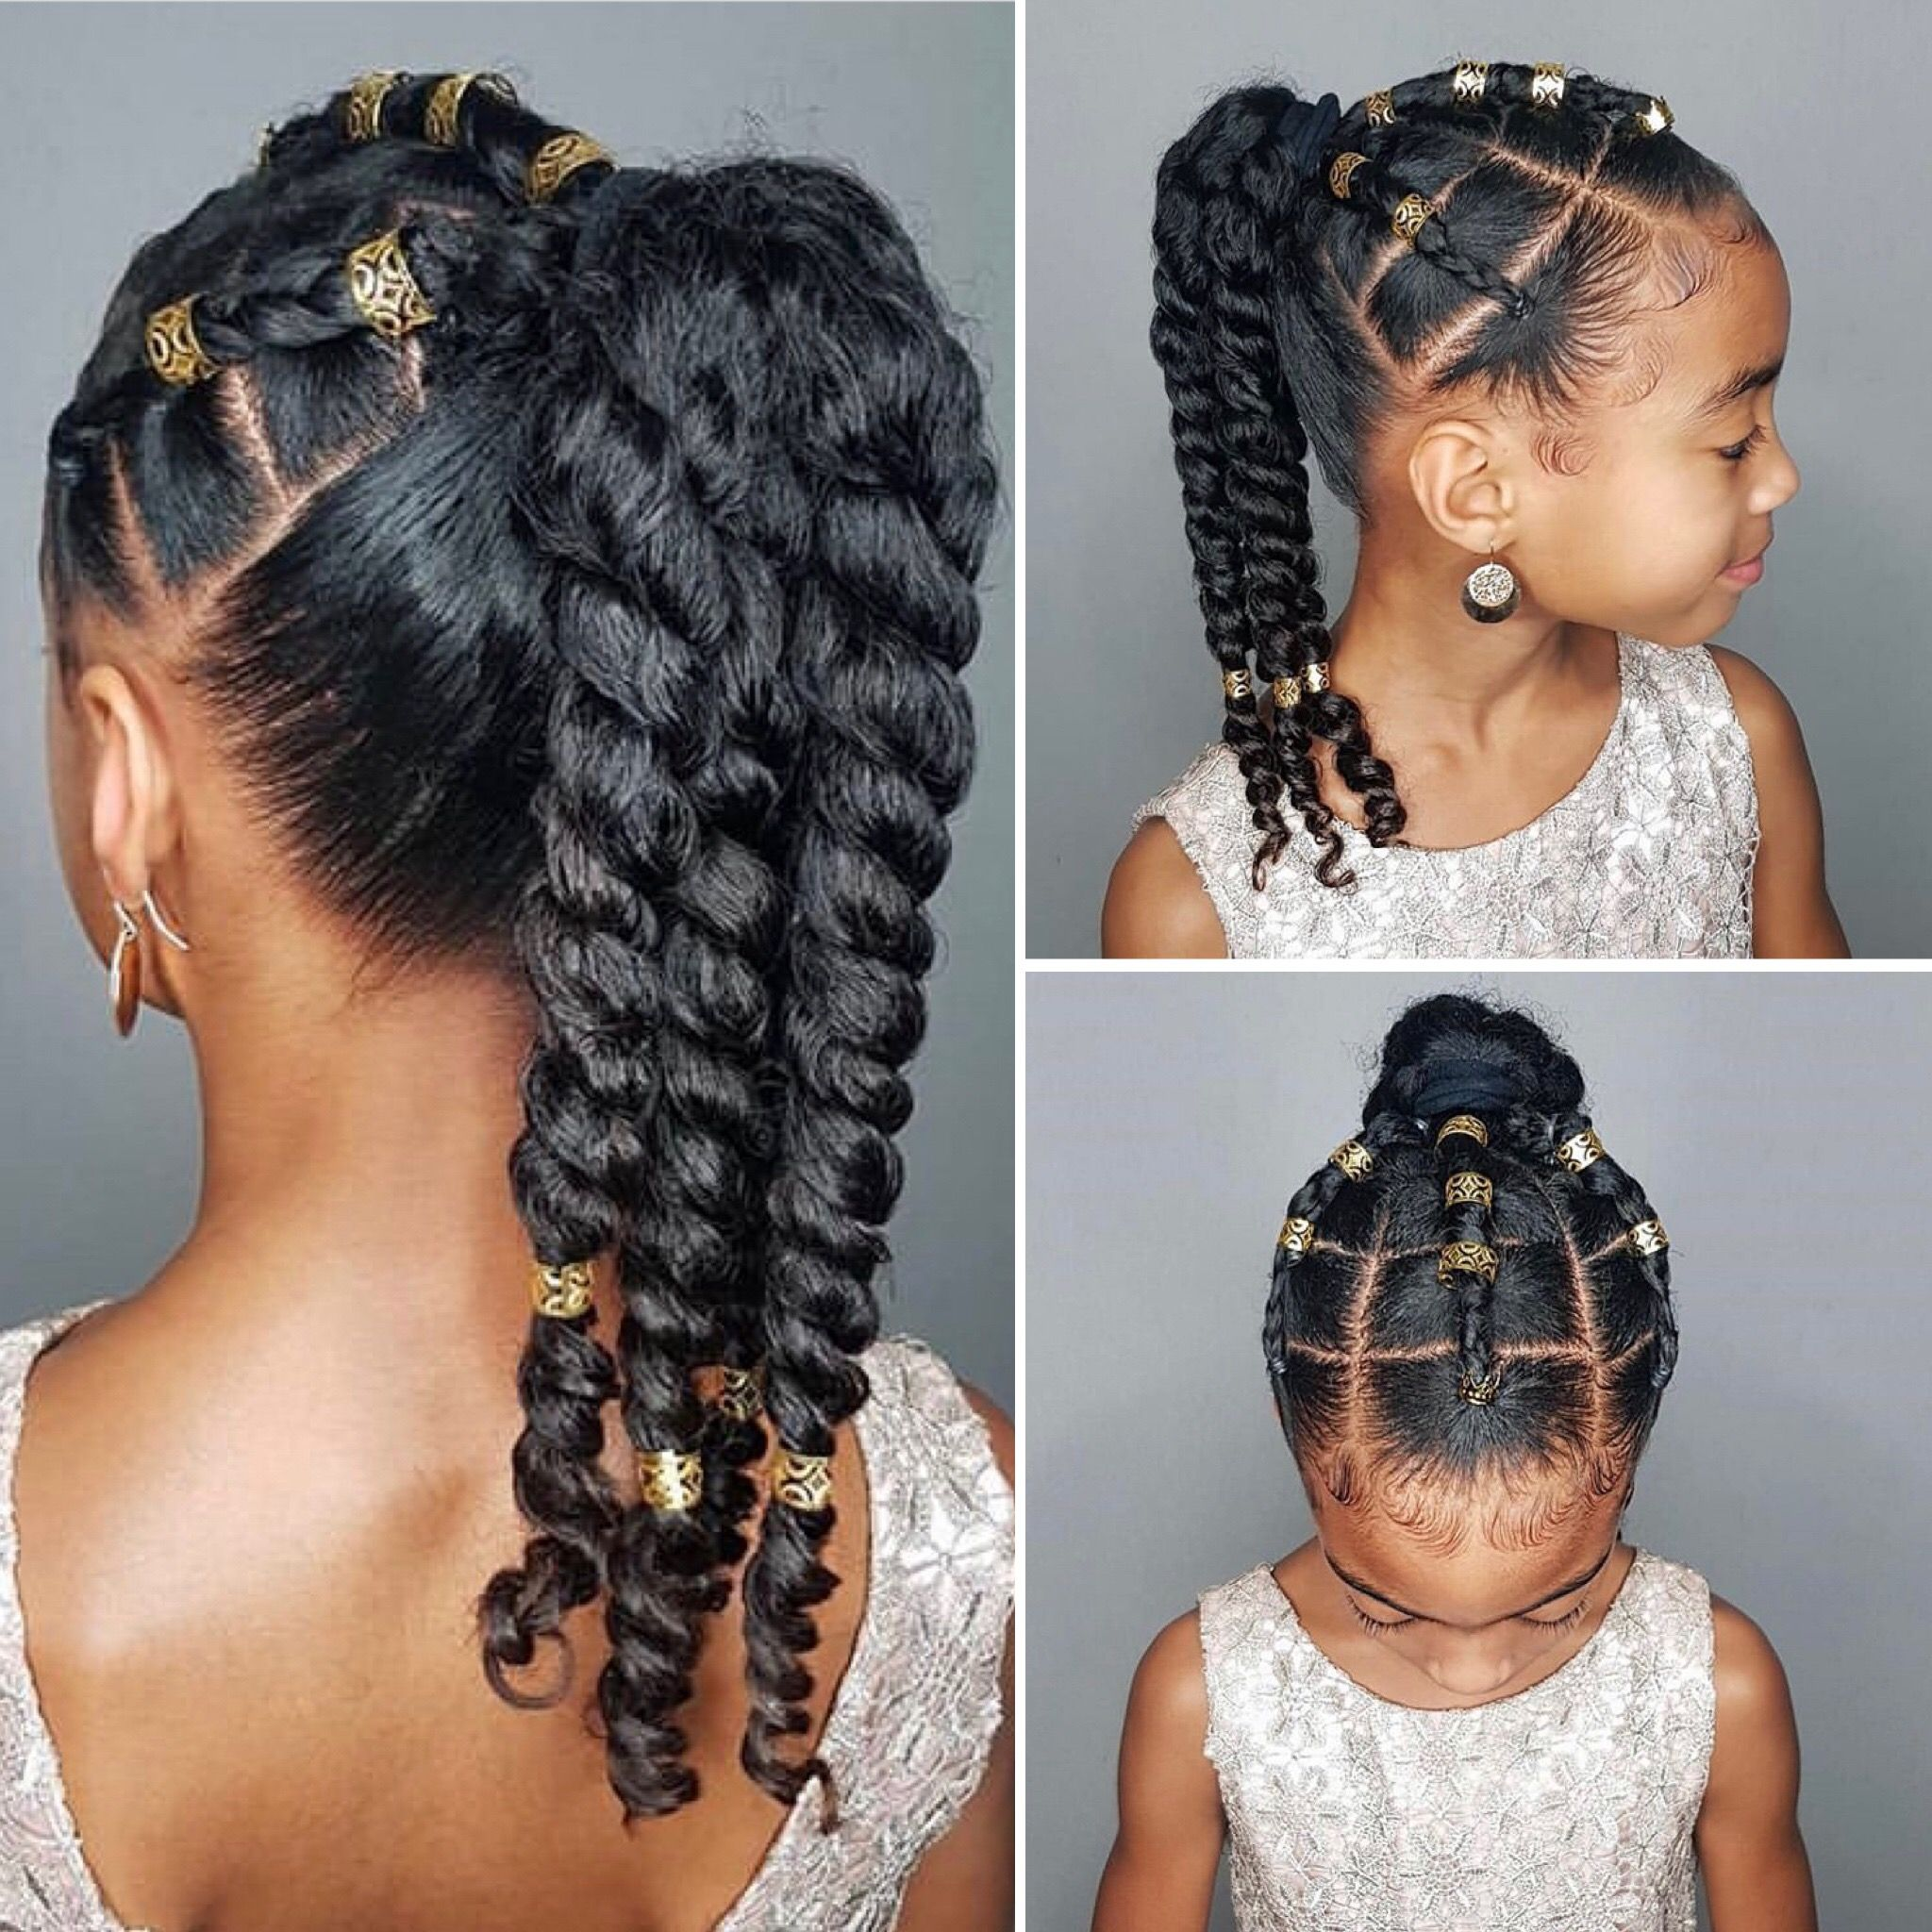 Riityeyayeѕt Eurodolls Girls Natural Hairstyles Kids Braided Hairstyles Natural Hairstyles For Kids